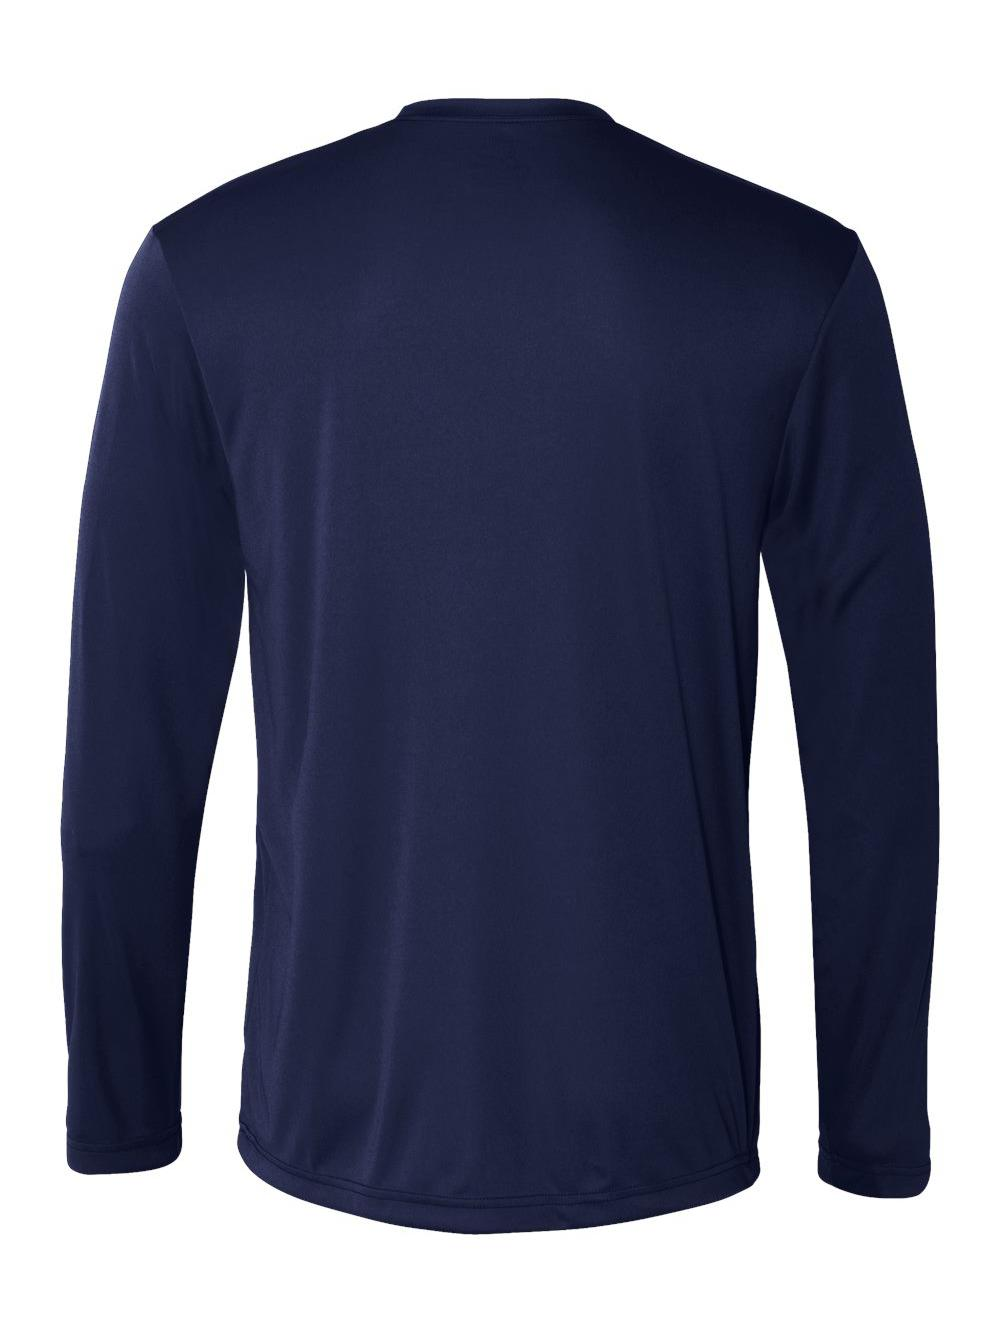 Hanes-Cool-Dri-Long-Sleeve-Performance-T-Shirt-482L thumbnail 16